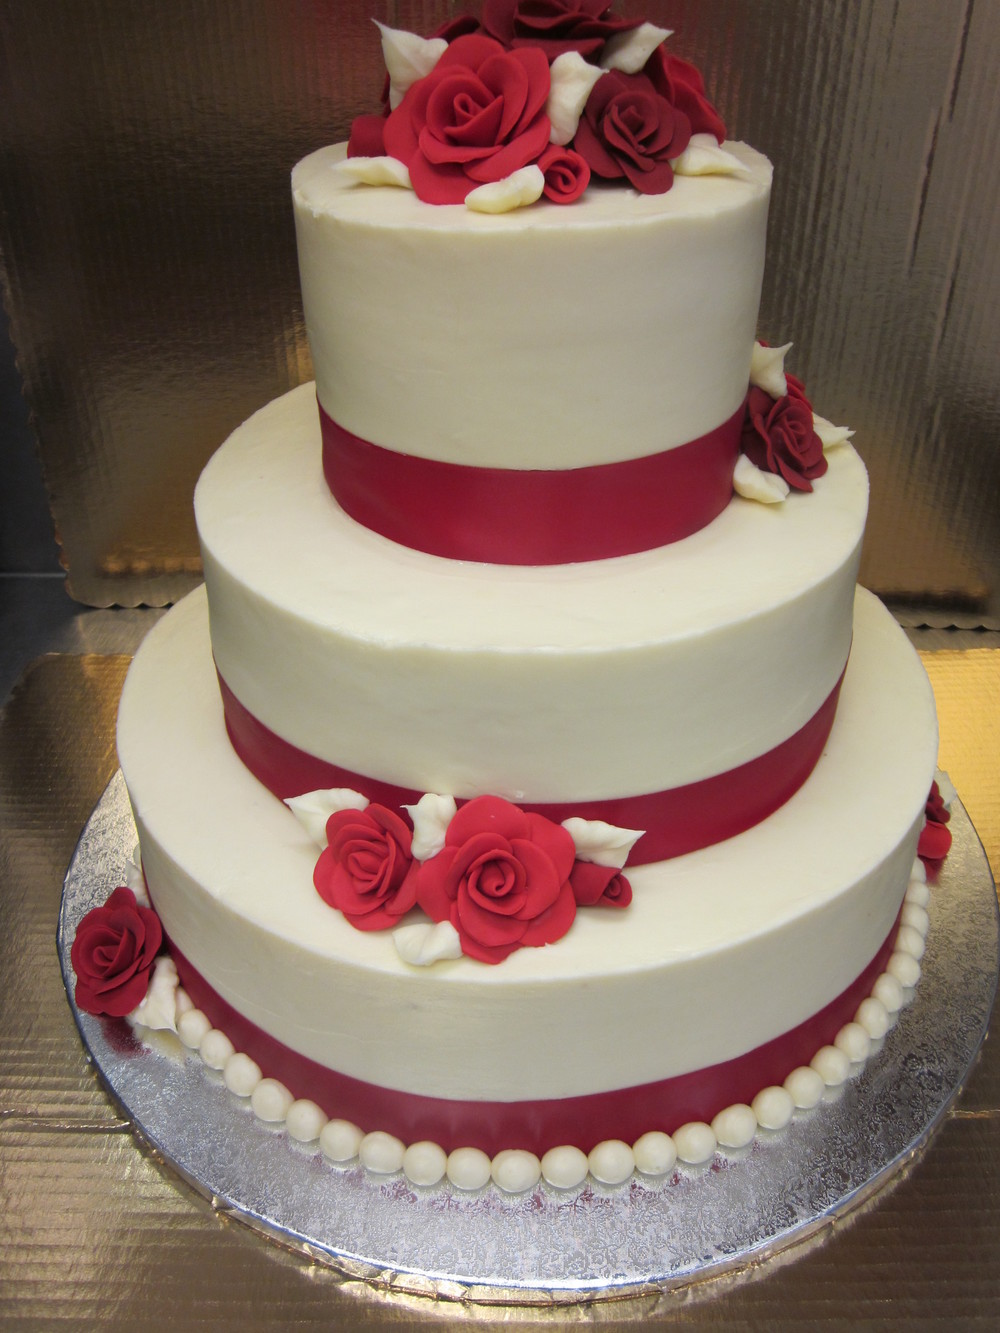 Wedding Cakes 610 626 7900 Sophisticakes